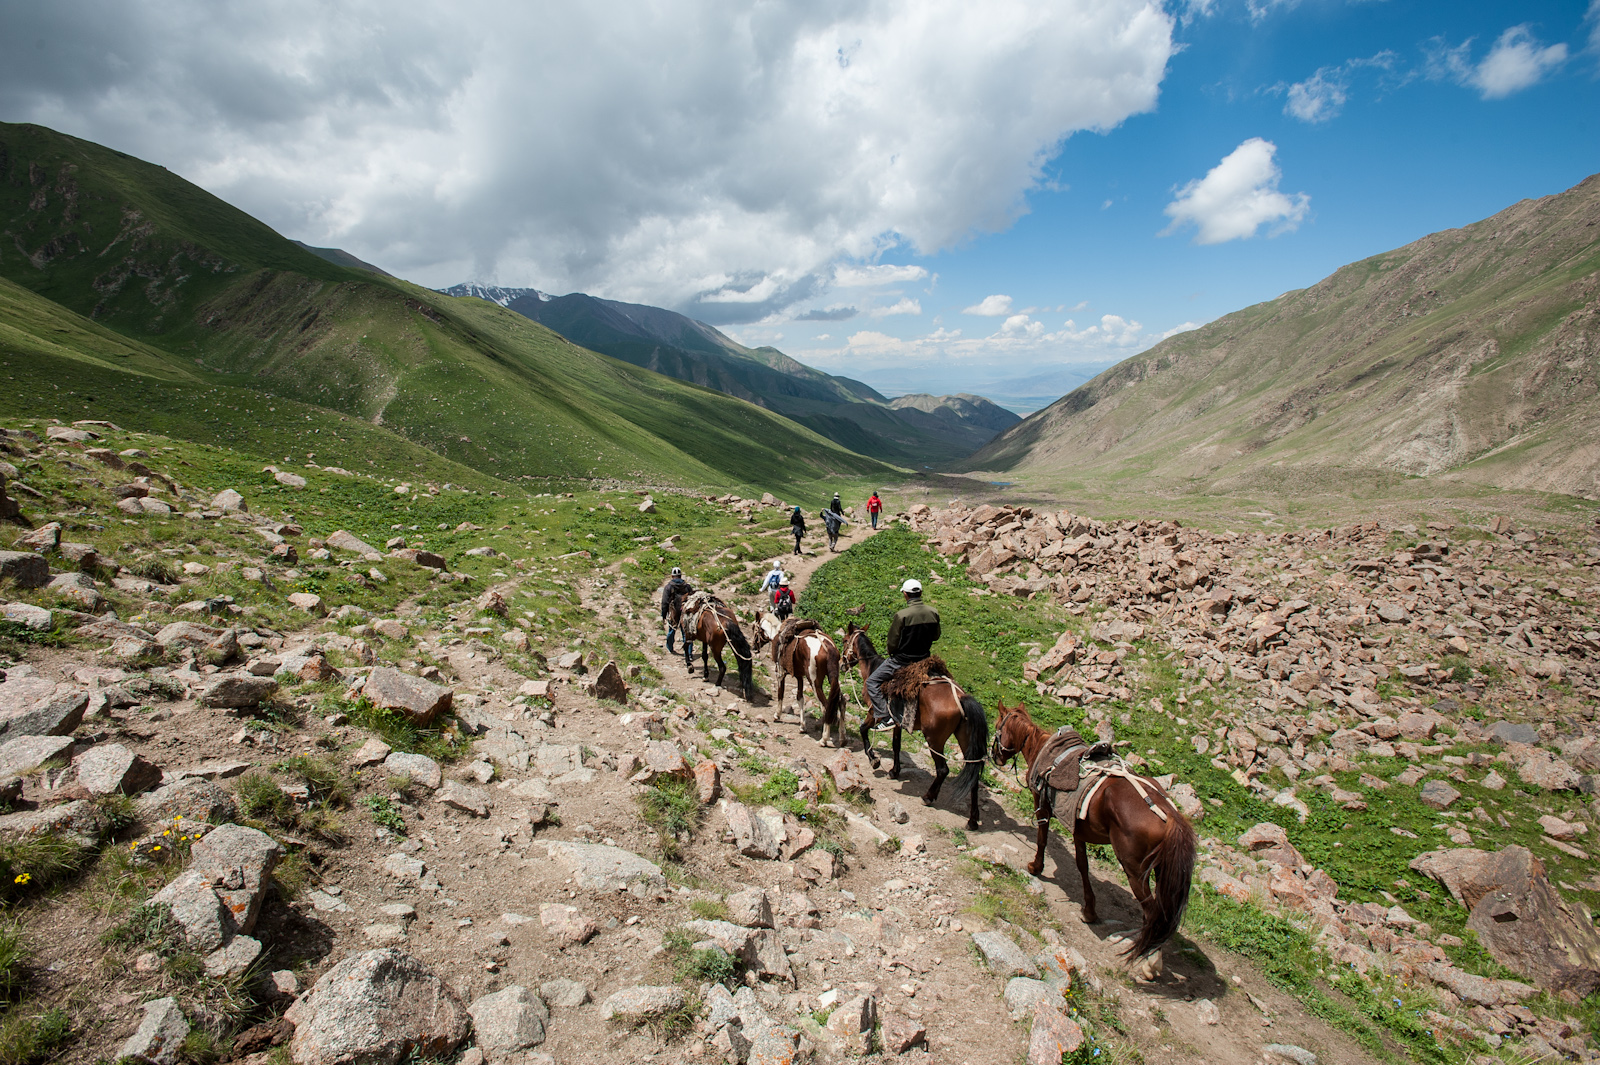 This photo is from a trip with my colleagues from Europe and Asia (2012). Kyrgyz were always nomads similarly to Mongols and their life was highly influenced by horses.